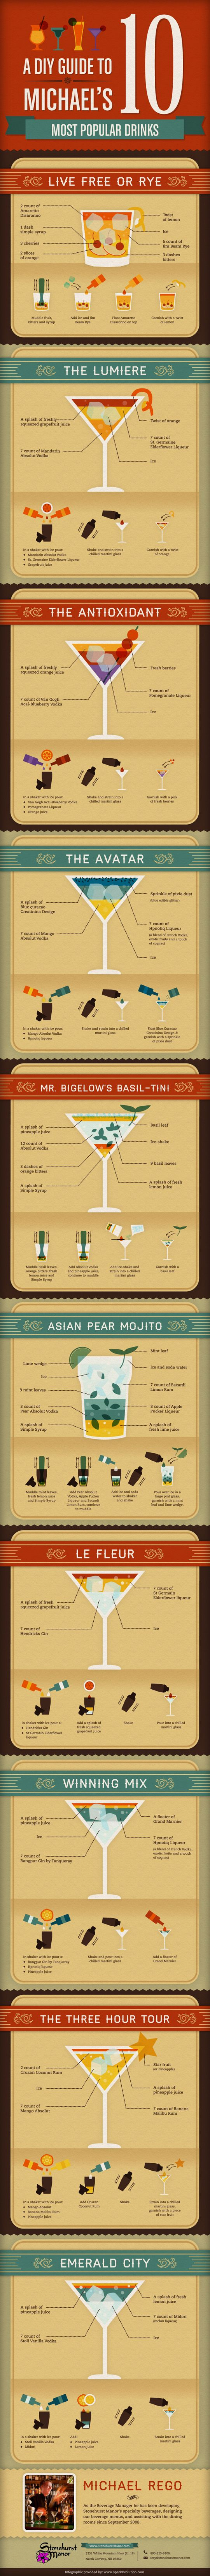 Michael Rego cocktail menu and recipe infographic!